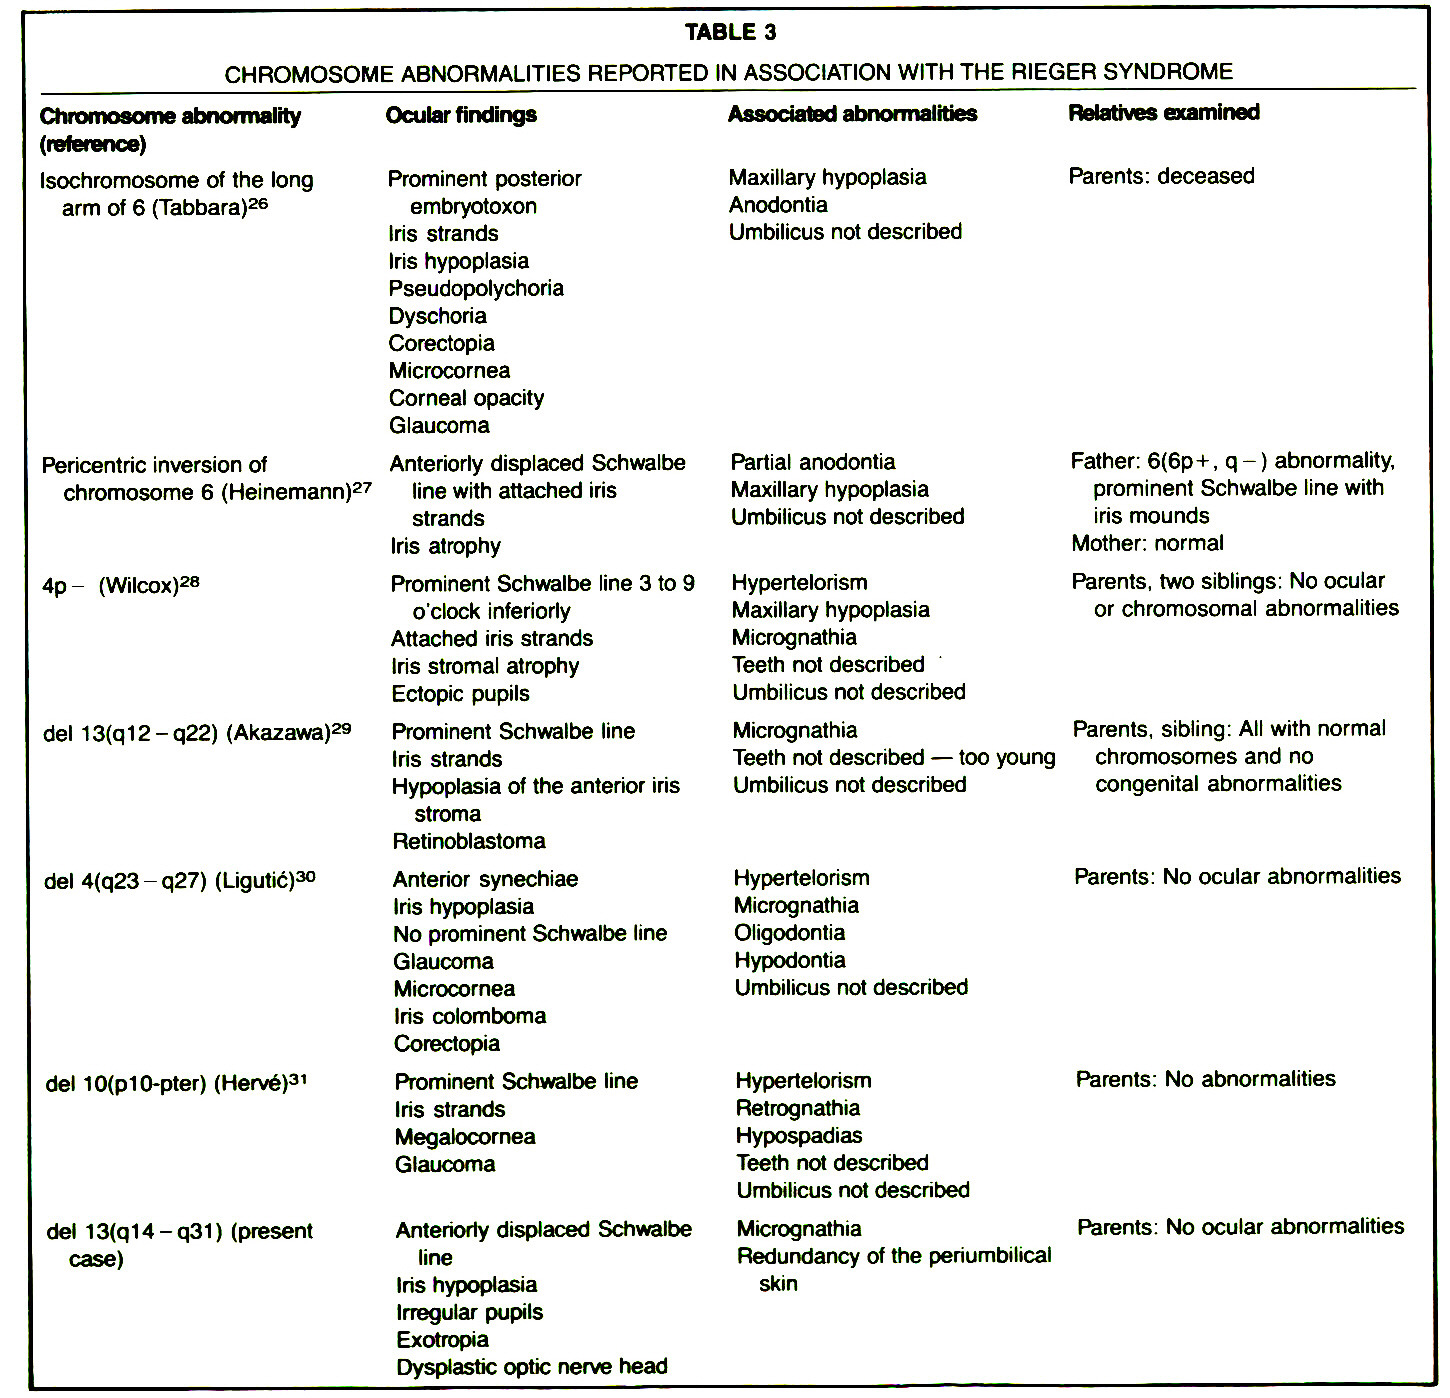 TABLE 3CHROMOSOME ABNORMALITIES REPORTED IN ASSOCIATION WITH THE RIEGER SYNDROME